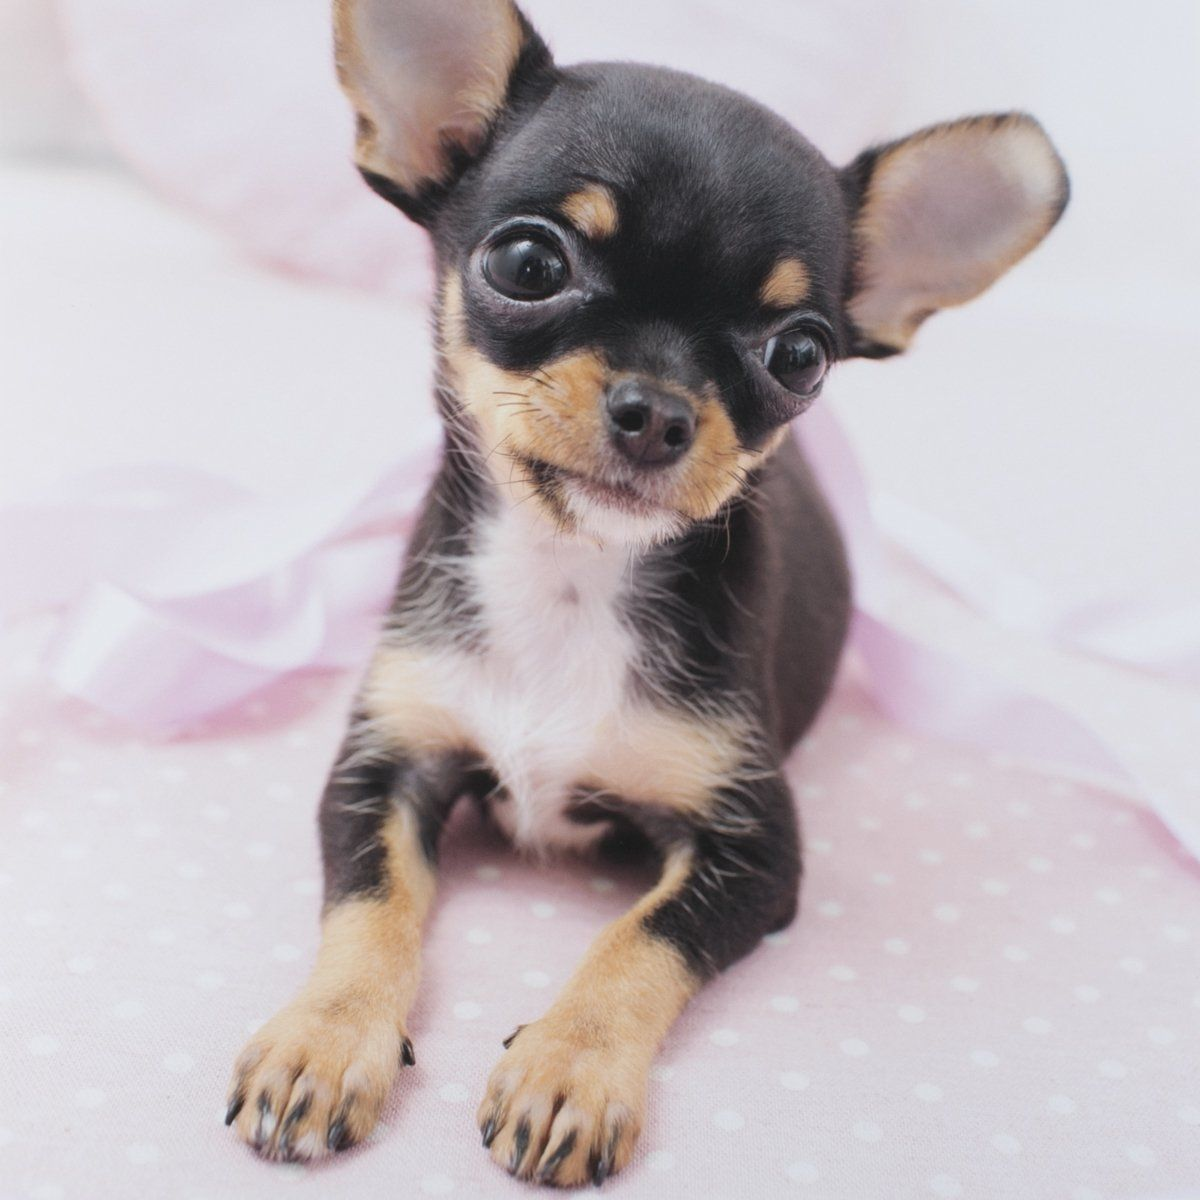 Chiwawa Puppy Pictures Backgrounds With Pics Of Puppies Hd For Iphone Chihuahua Guide To Wallpaper High Resolution A Chihuahua Puppies Cute Chihuahua Chihuahua